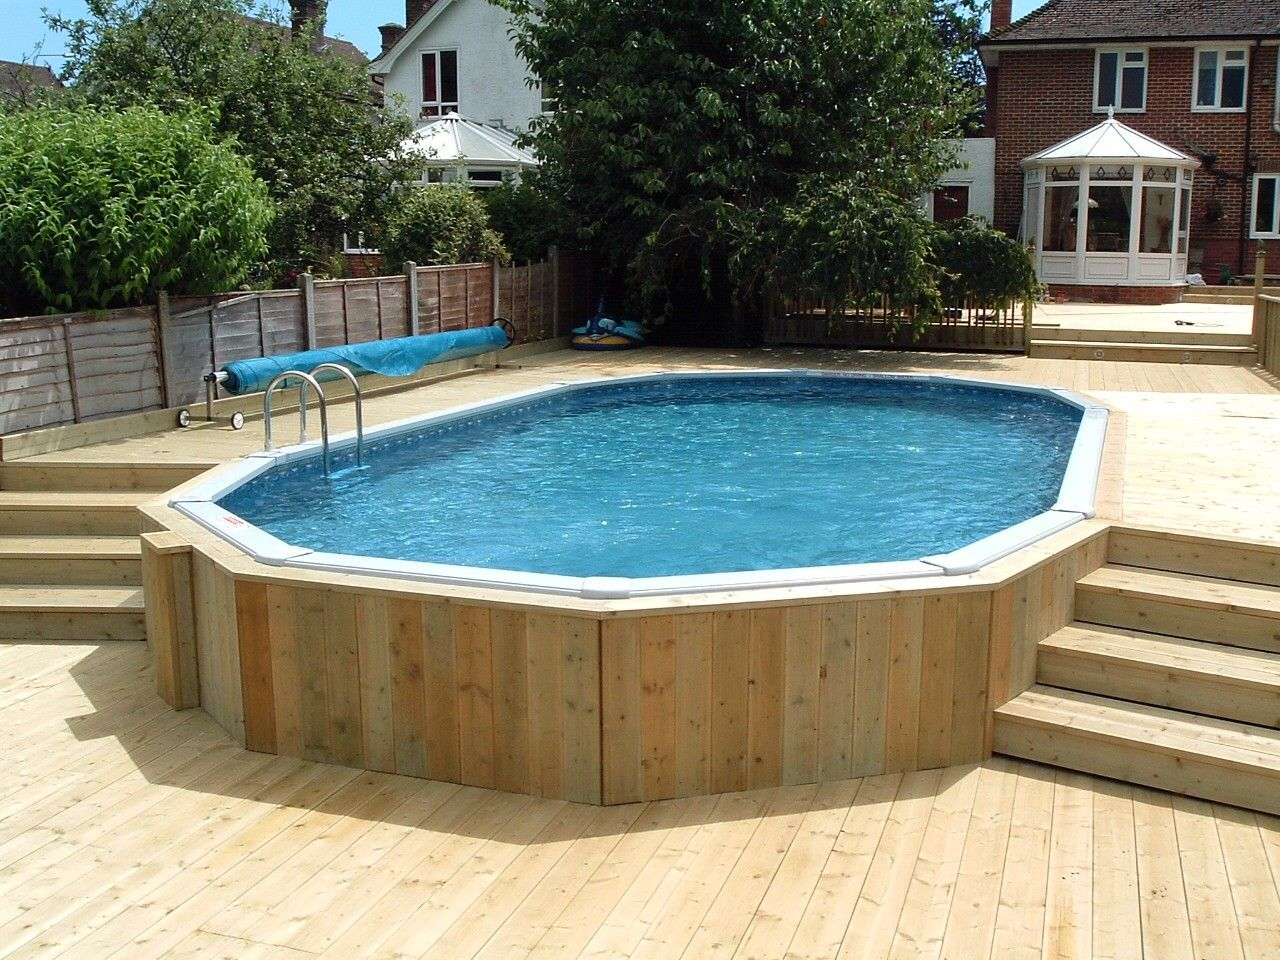 30 39 x 15 39 aluminium above ground pool with decking for Swimming pool deck